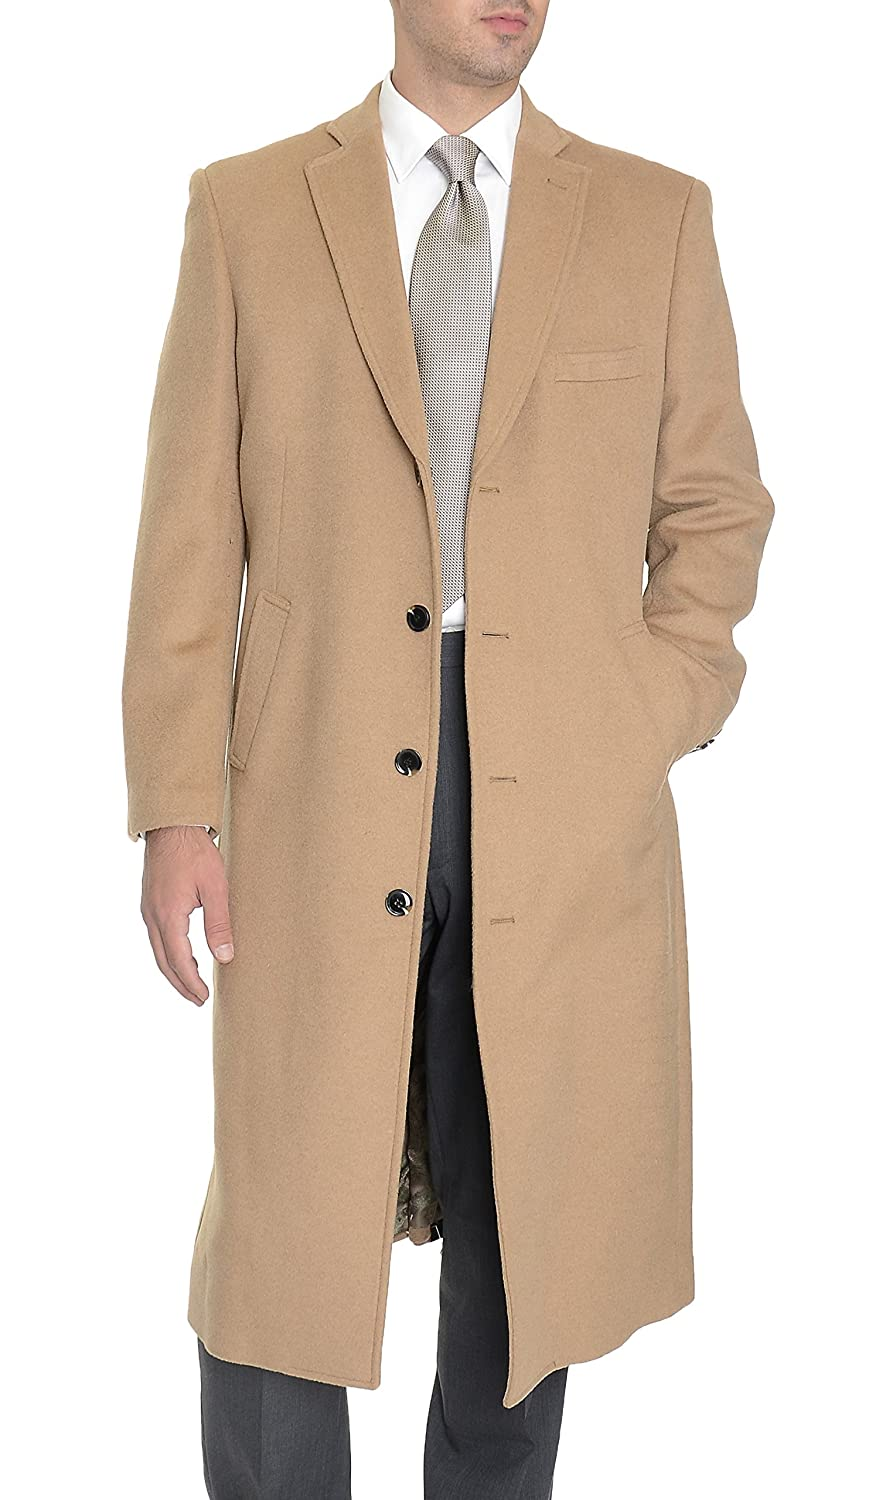 Mens Single Breasted Full Length Wool Cashmere Blend Overcoat Top Coat The Suit Depot